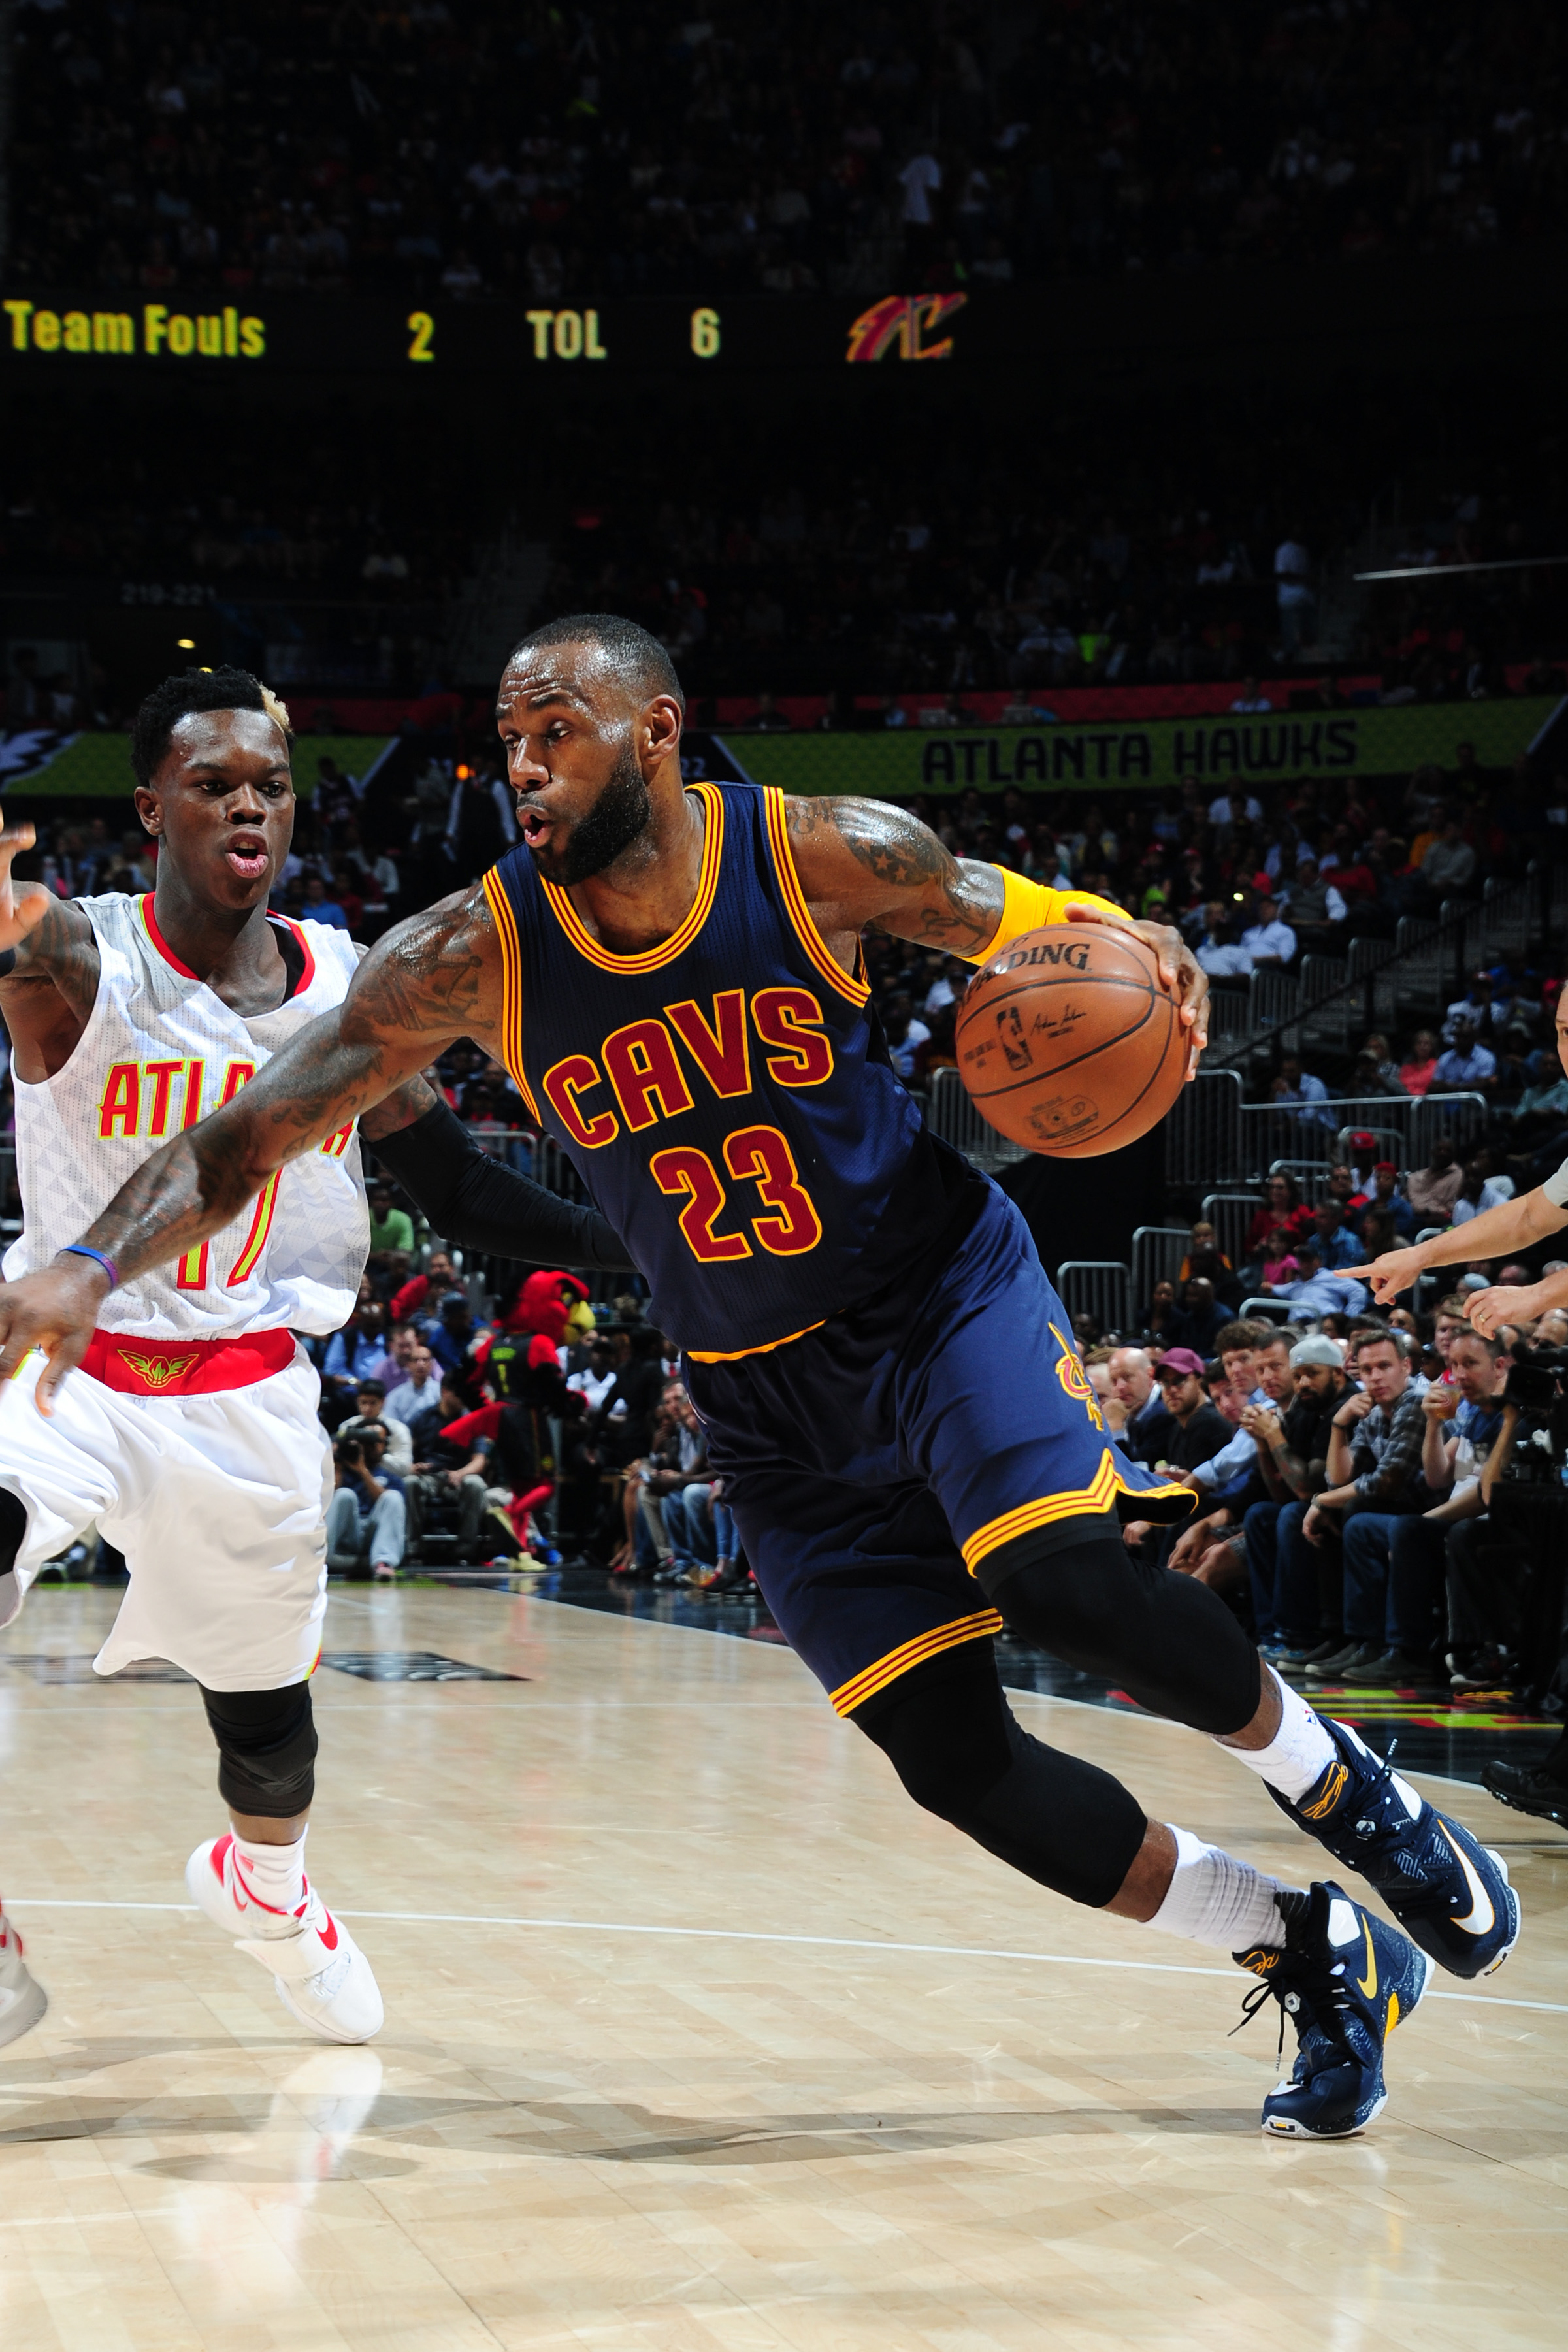 ATLANTA, GA - APRIL 1: LeBron James #23 of the Cleveland Cavaliers handles the ball against the Atlanta Hawks on April 1, 2016 at Philips Arena in Atlanta, Georgia.  (Photo by Scott Cunningham/NBAE via Getty Images)